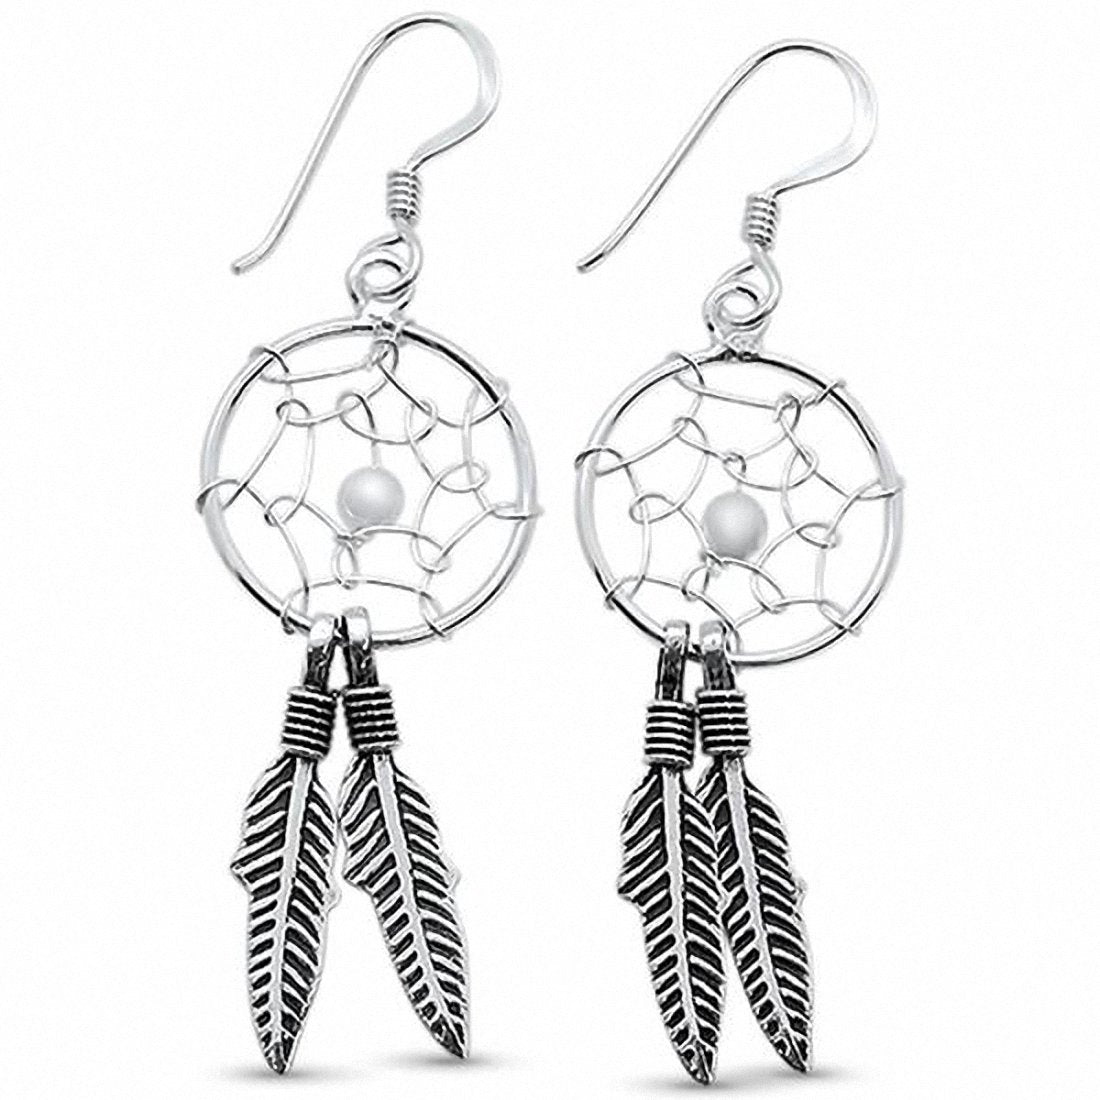 Feather Dreamcatcher Earrings 925 Sterling Silver Choose Color